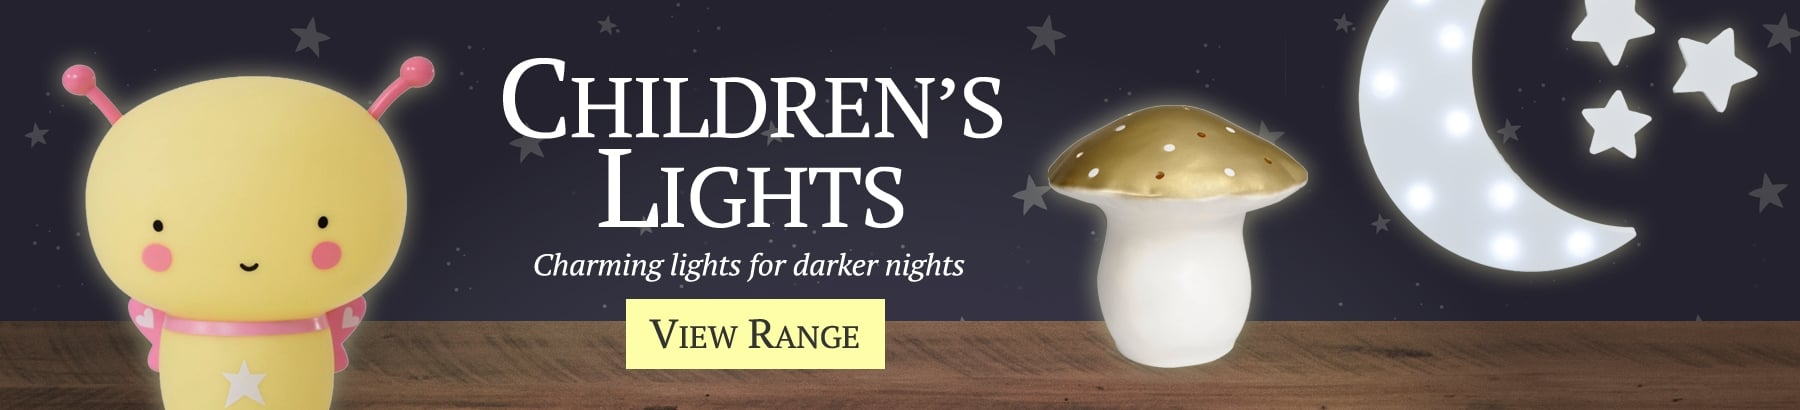 Children's Lights